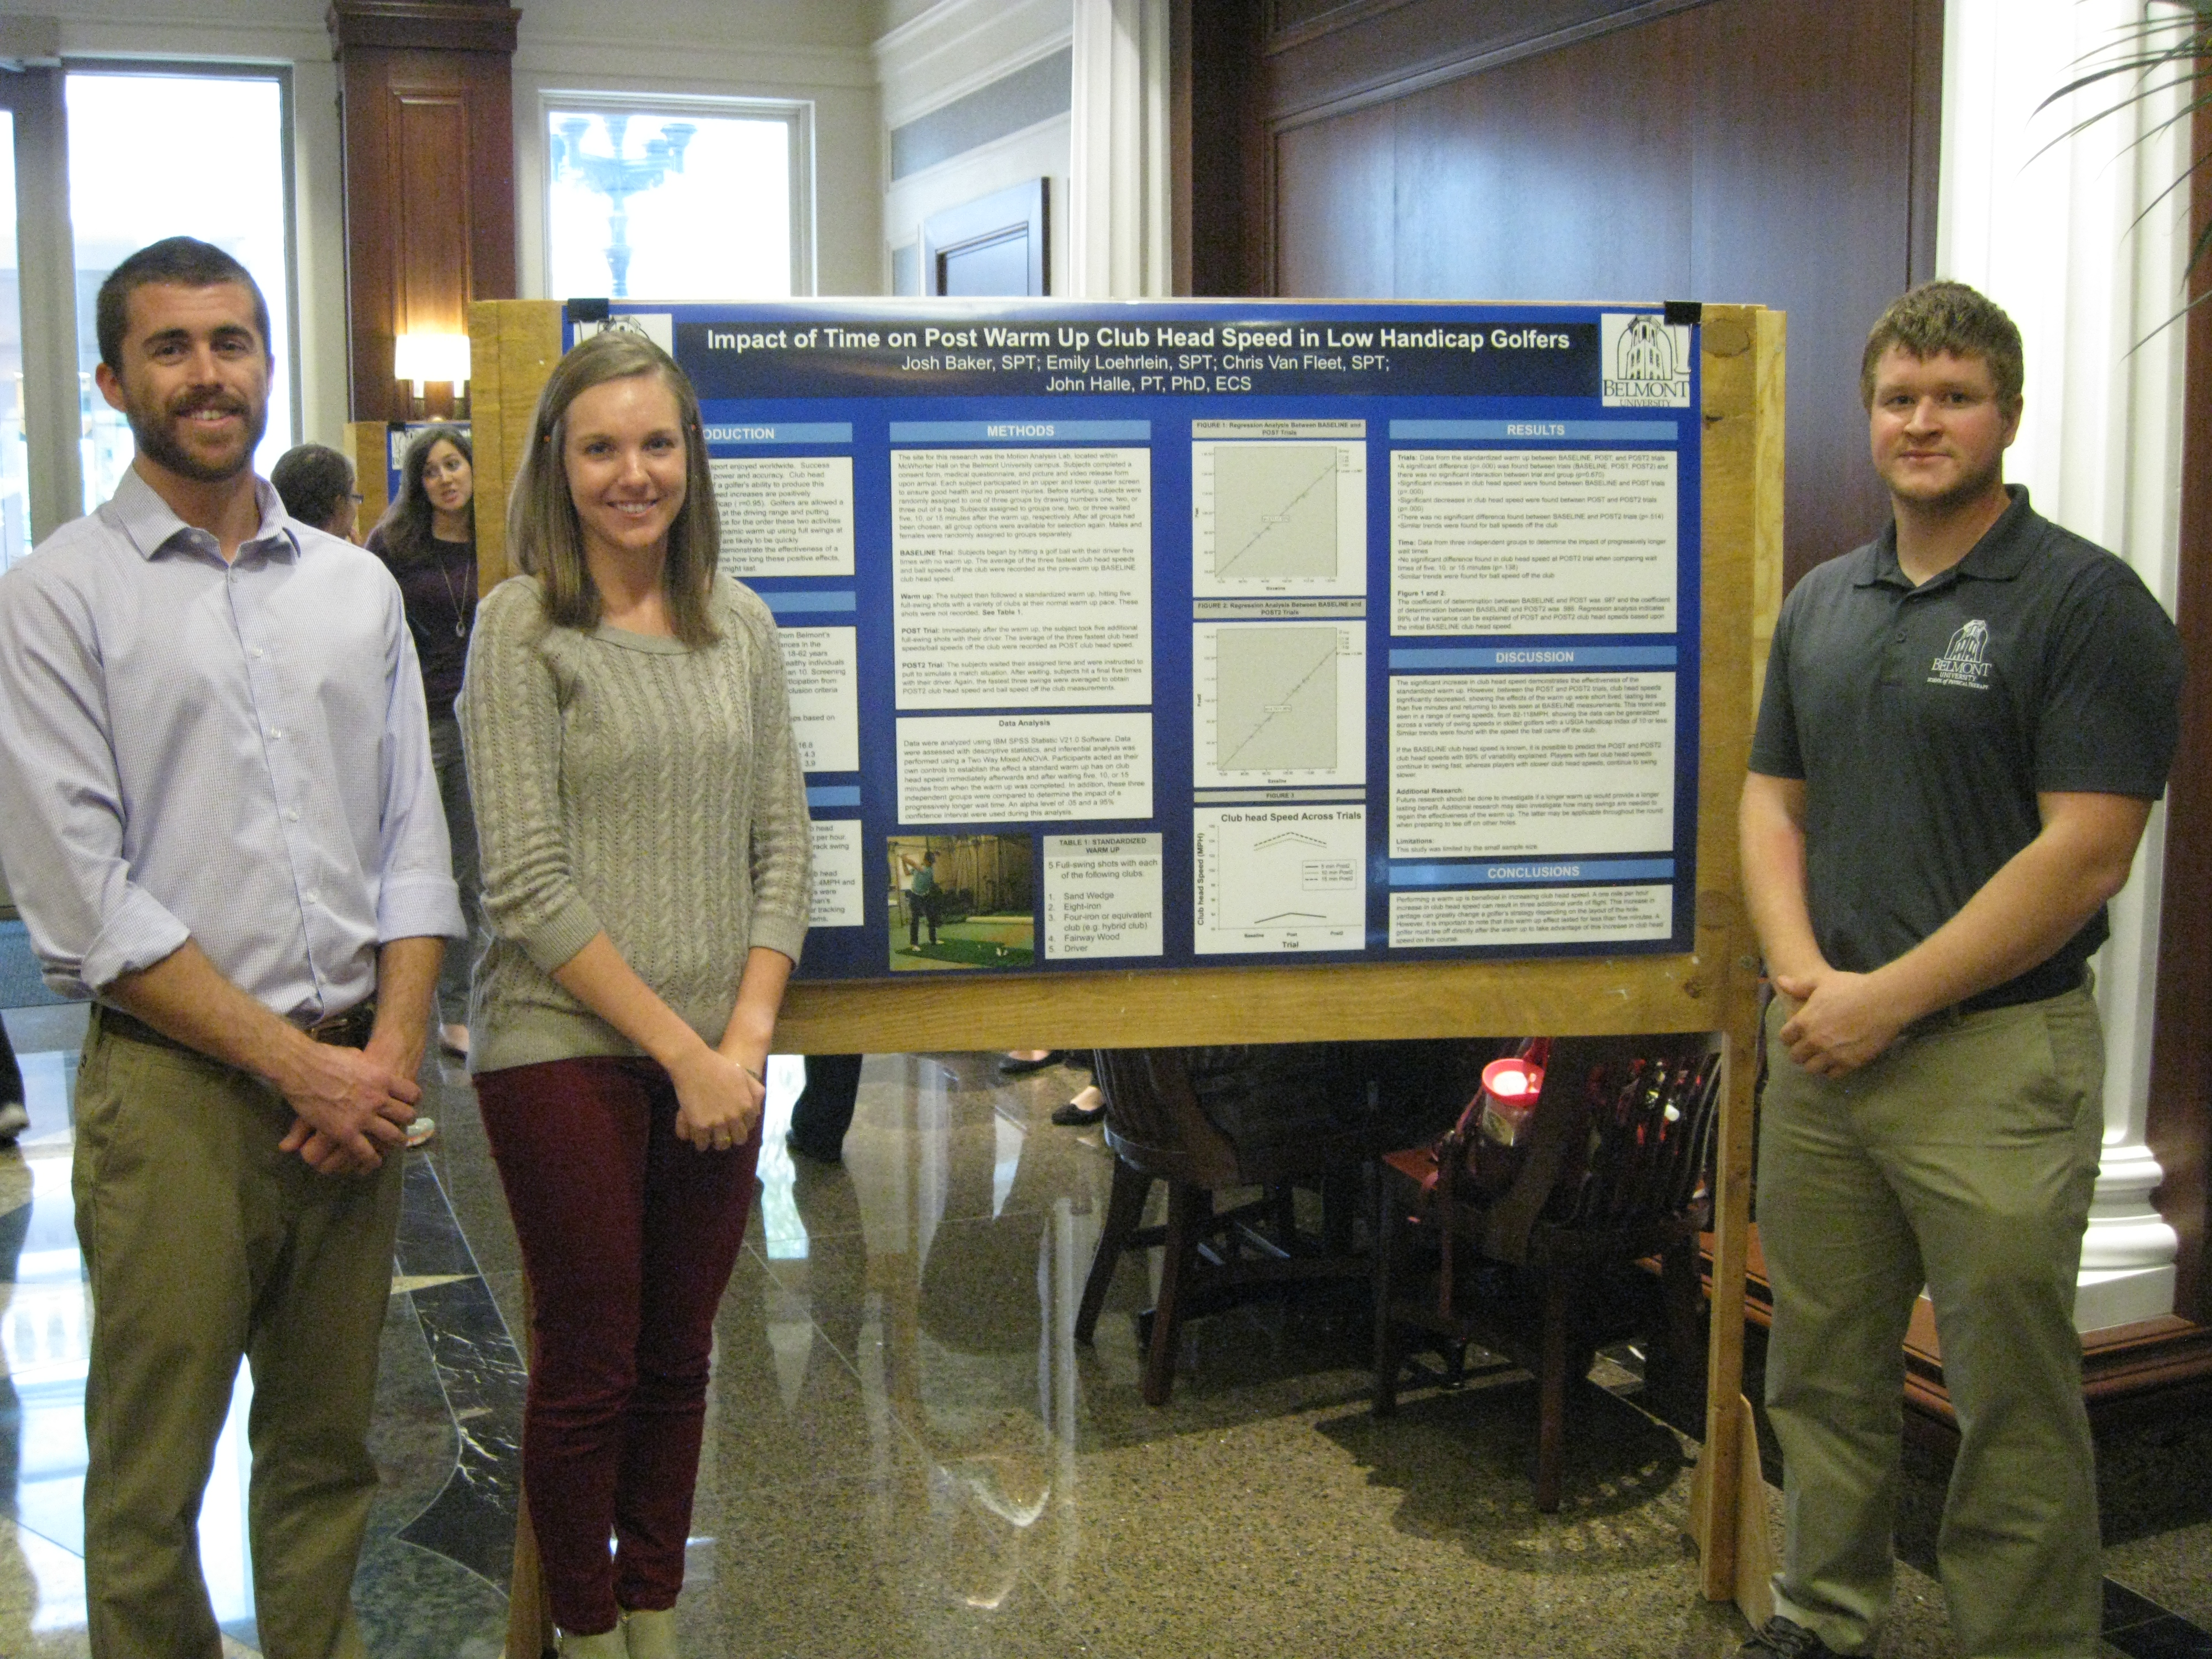 Jobs for impact physical therapy - Below Are The Presentations Congratulations To The Third Year Physical Therapy Students On This Significant Accomplishment 1 The Impact